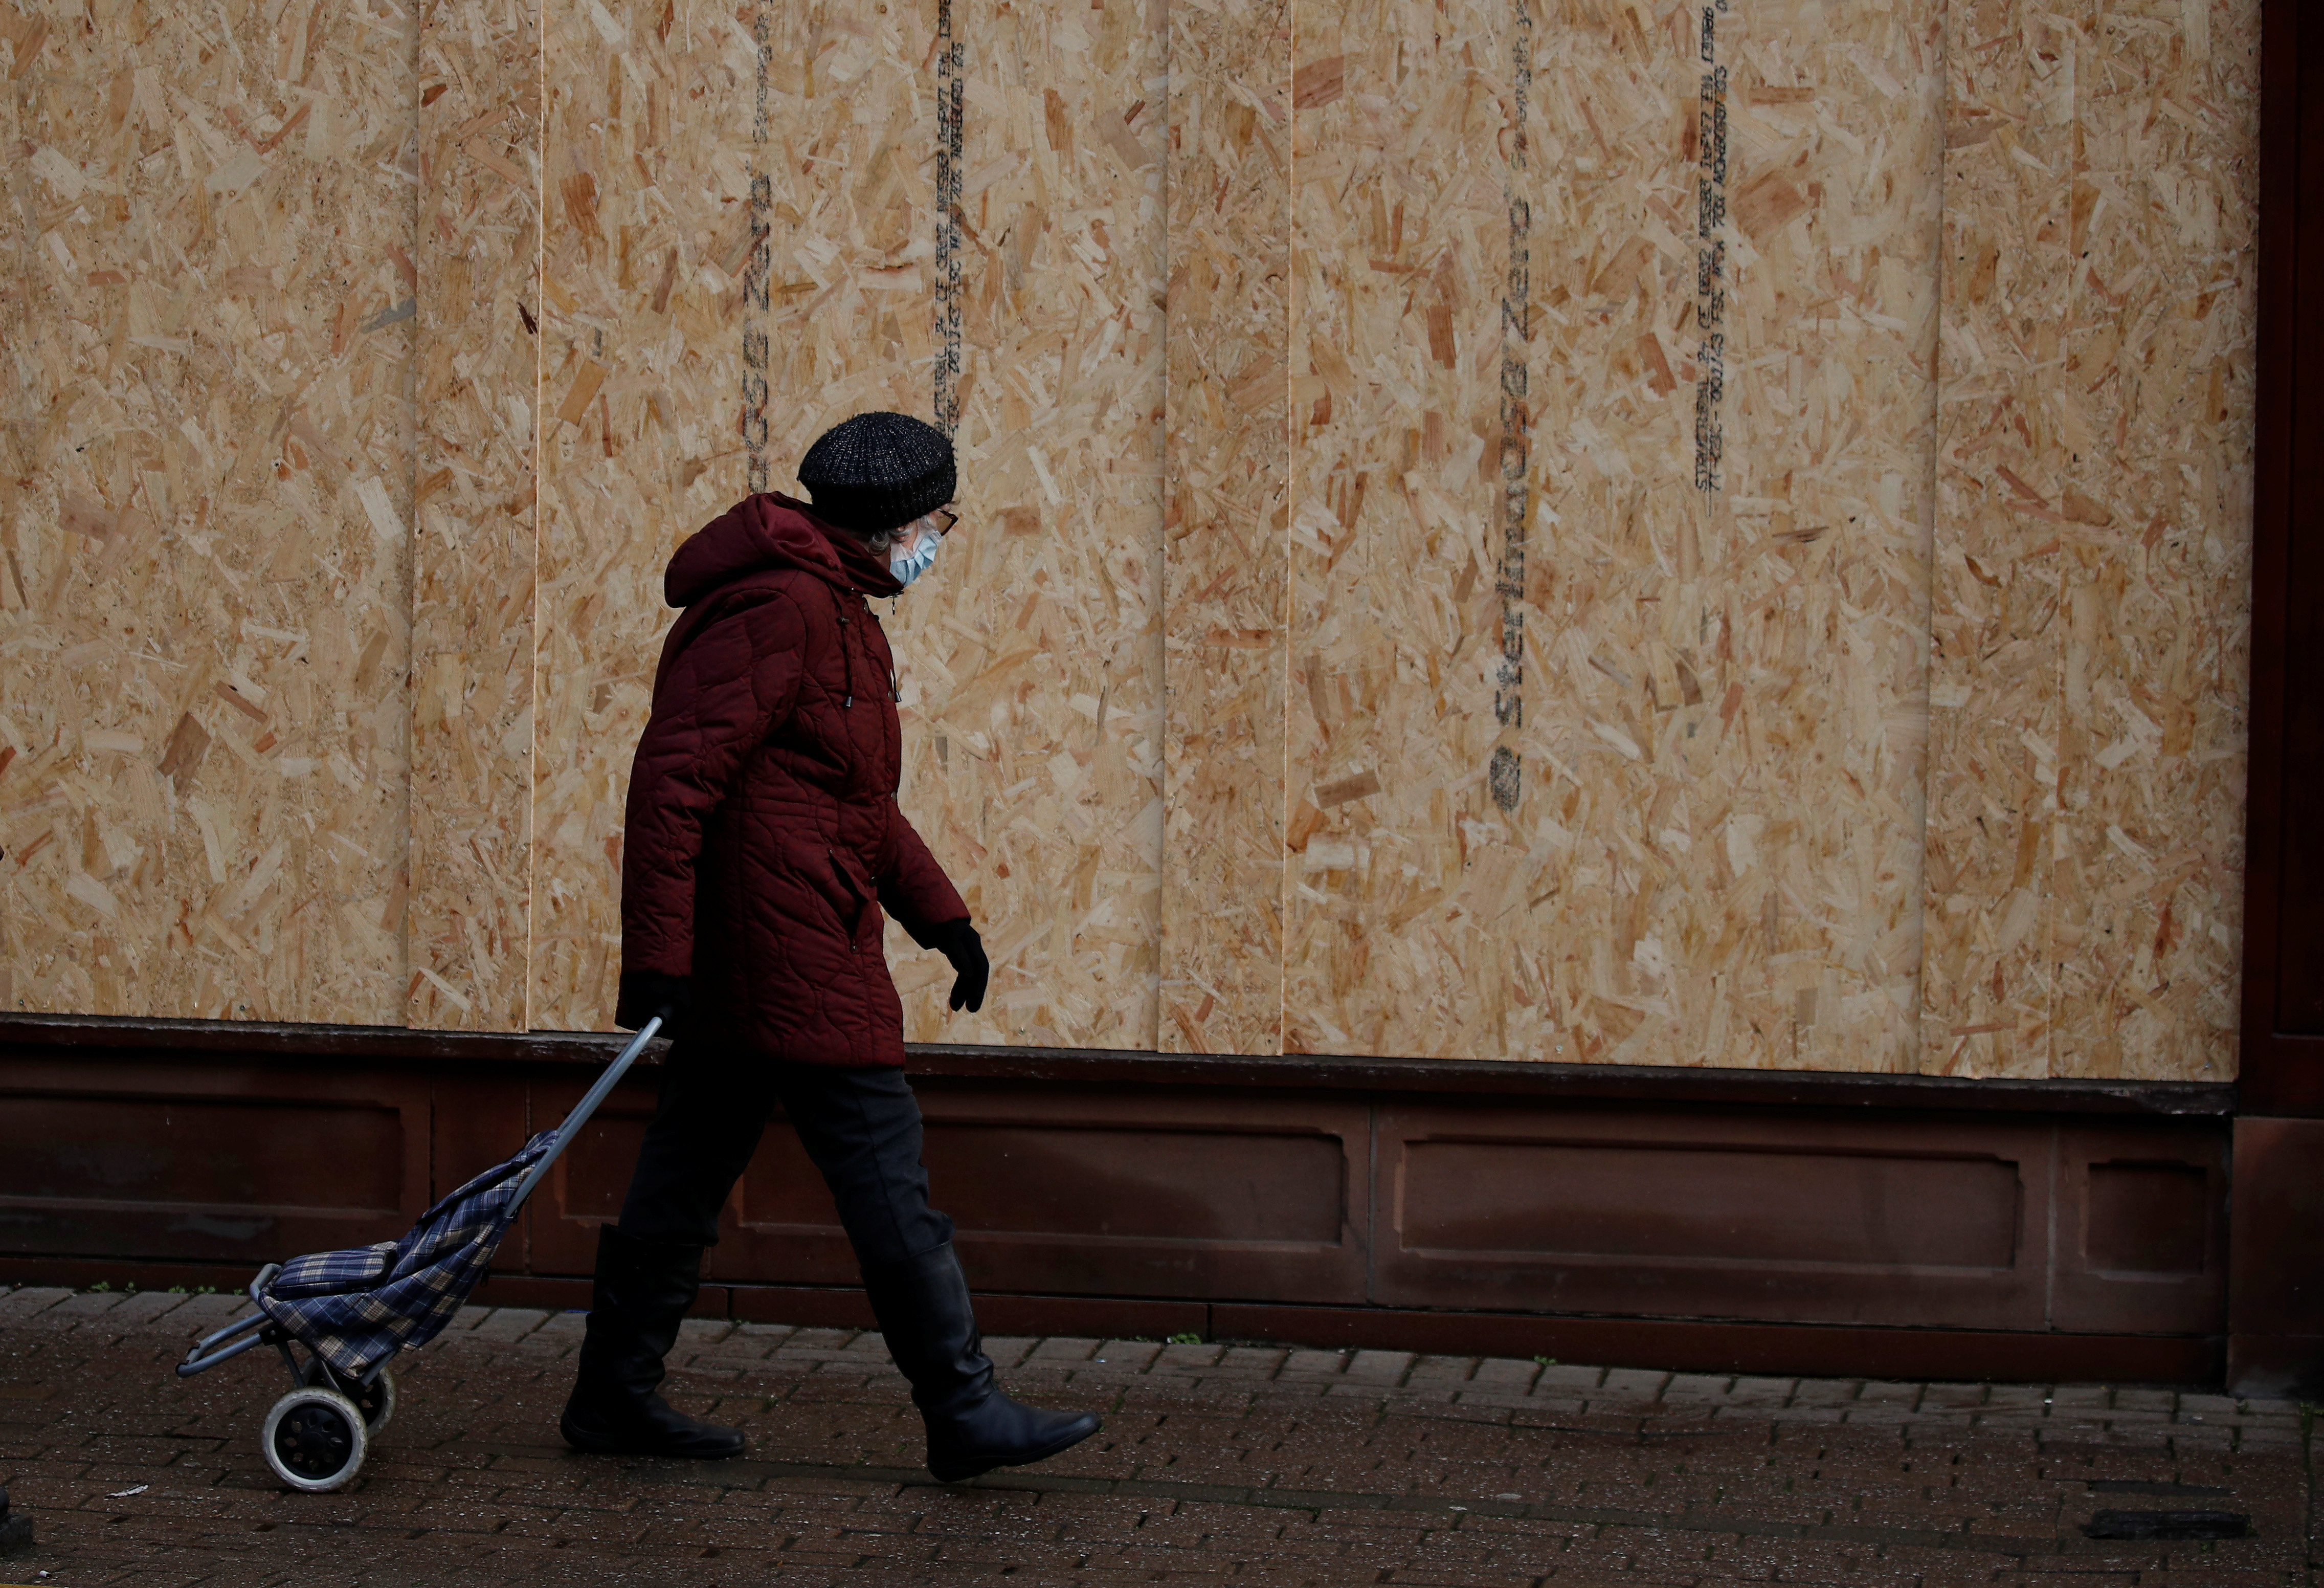 A woman walks past a boarded up retail unit amid the outbreak of the coronavirus disease (COVID-19) in Chester, Britain, December 8, 2020. Picture taken December 8, 2020. REUTERS/Phil Noble - RC2DKK9J373H